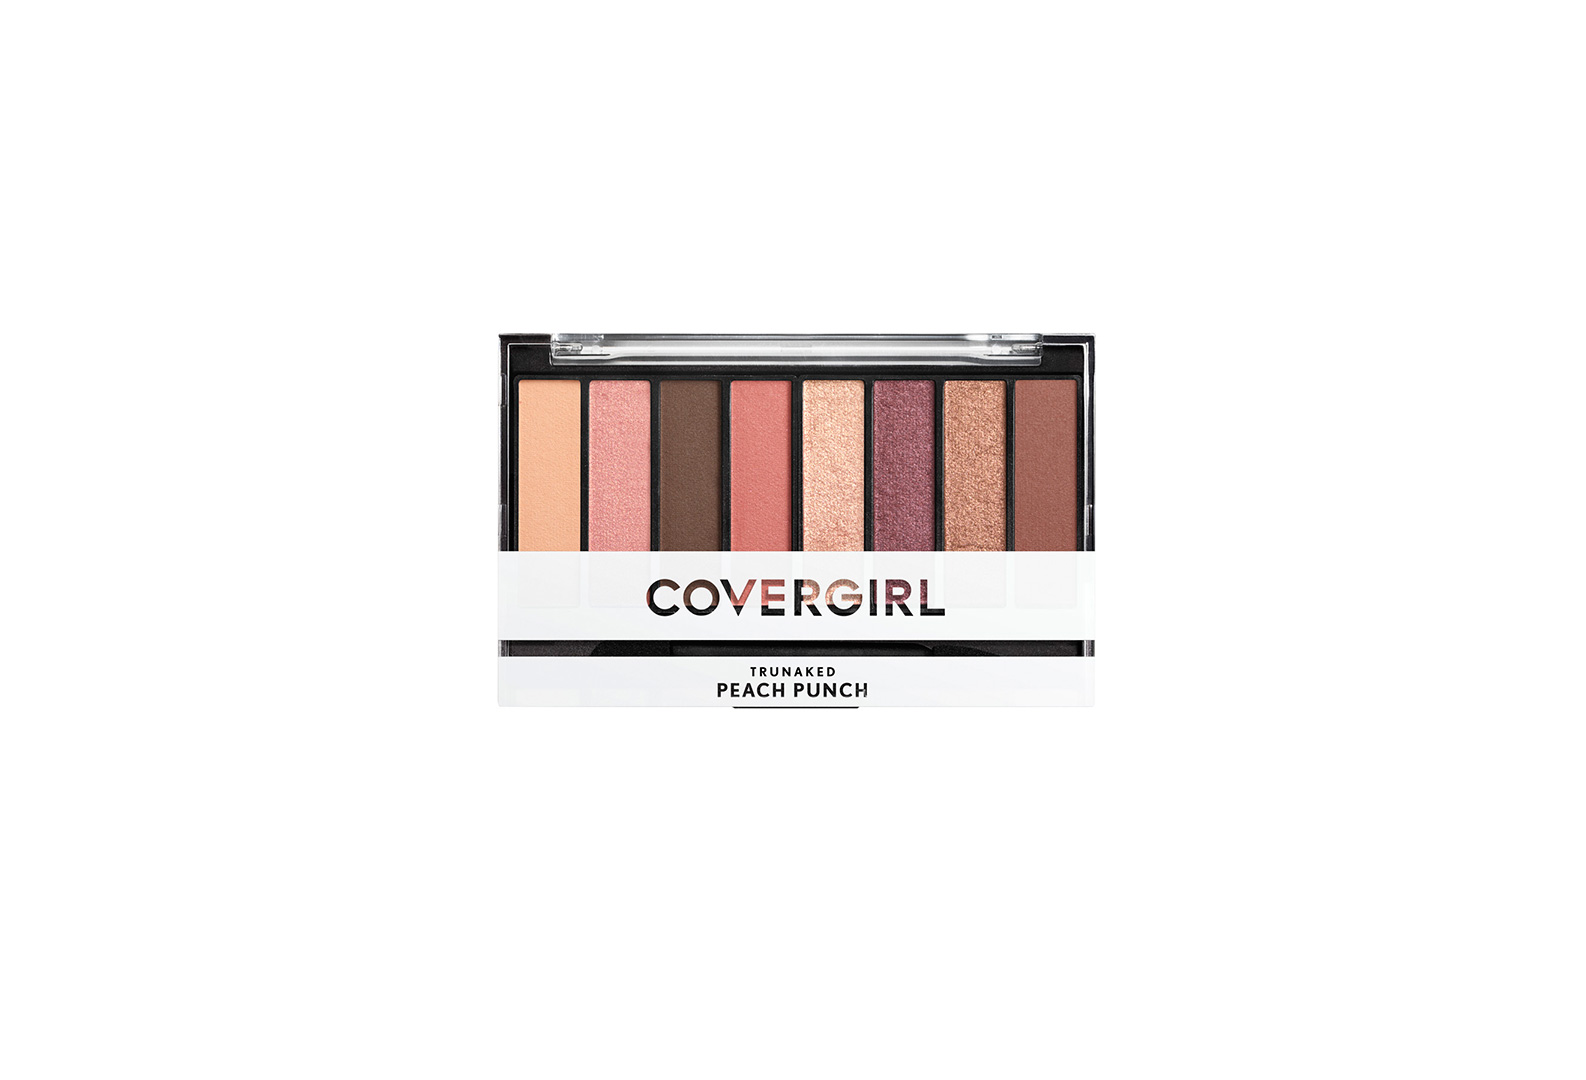 Covergirl Trunaked Palette in Peach Punch (0718BPS)